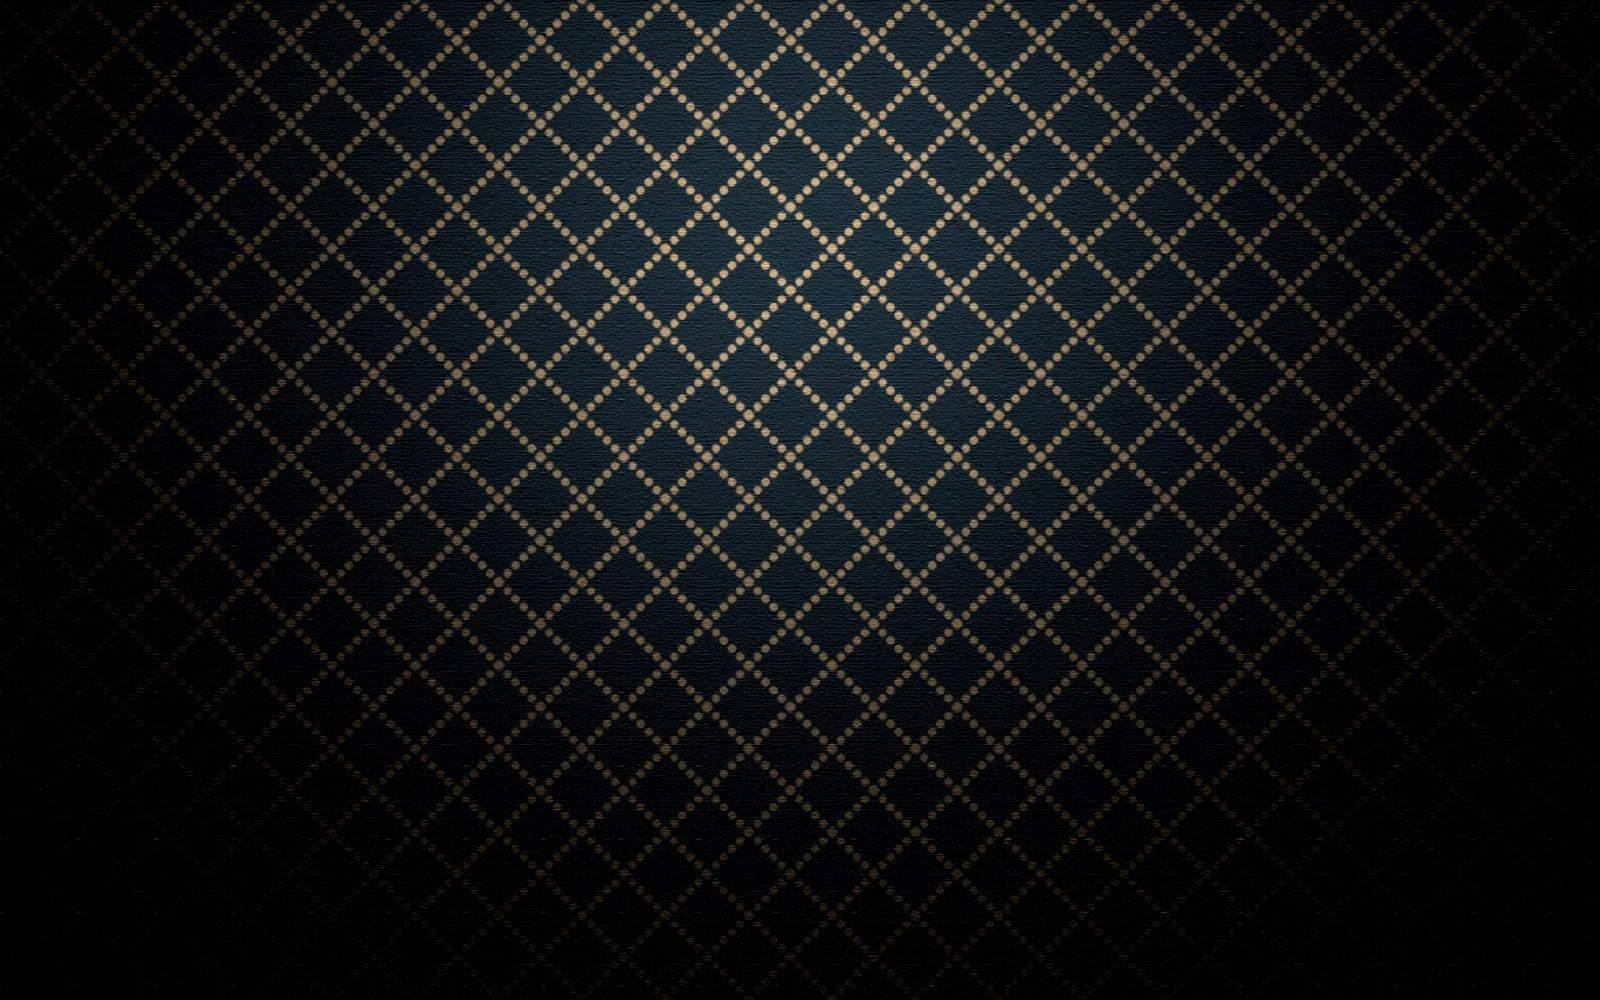 Black Texture Background Glow Hd Pictures